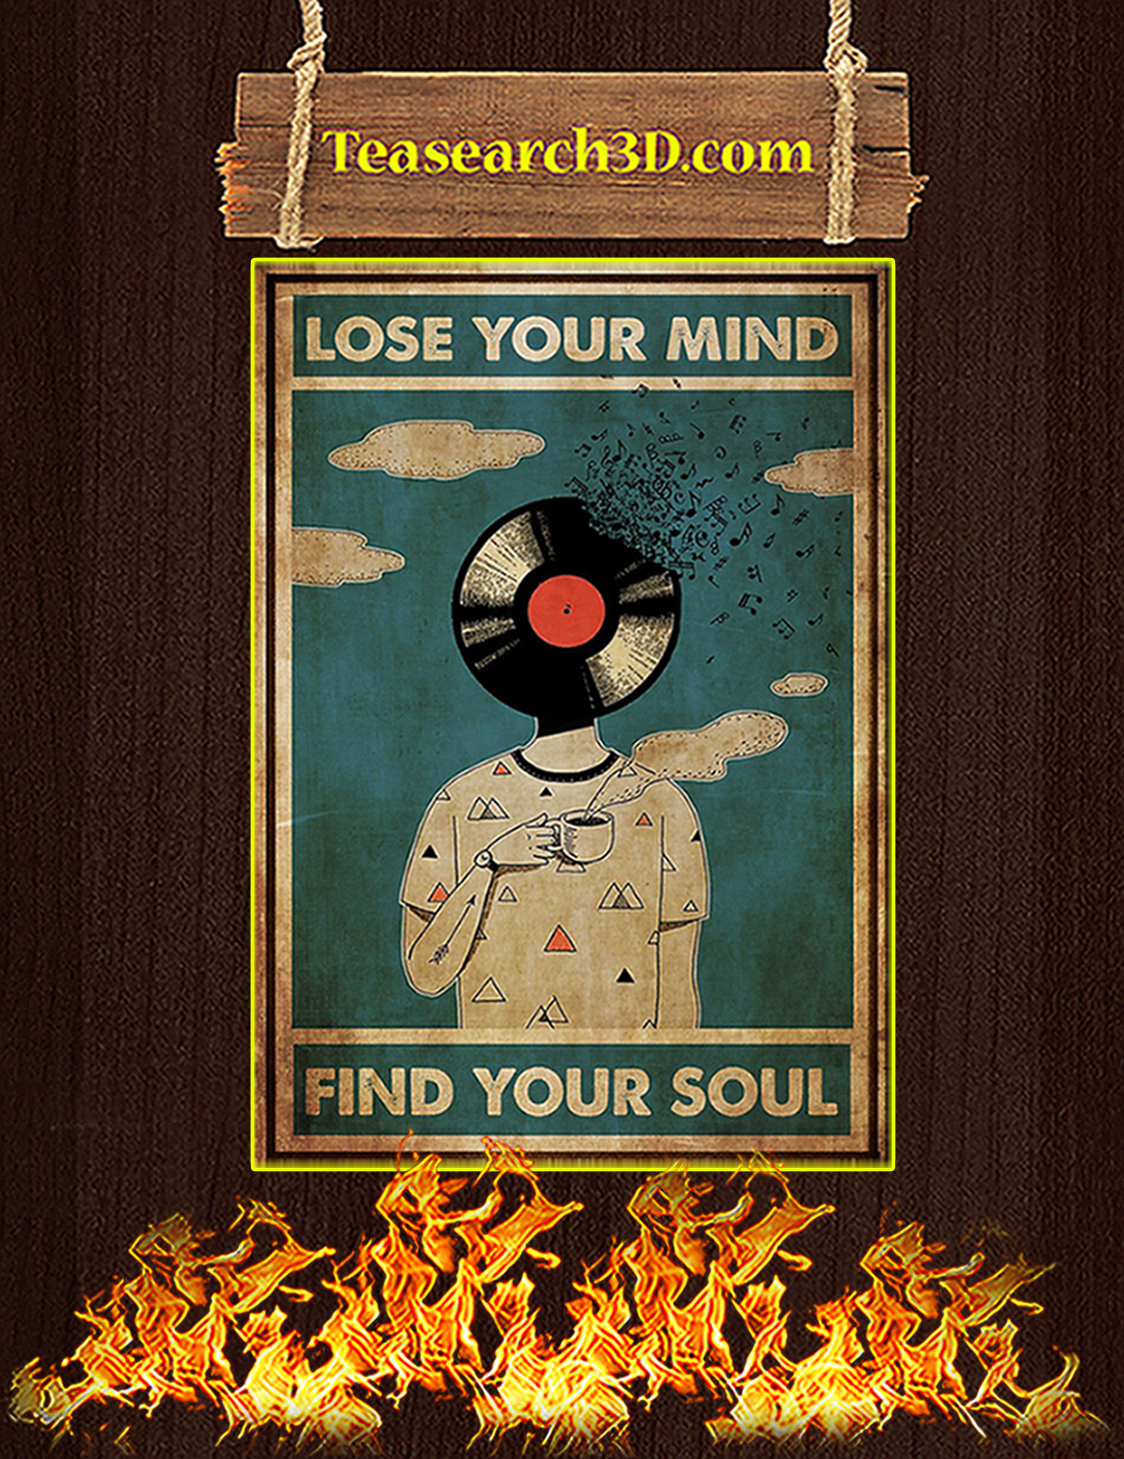 DJ lose your mind find your soul poster A3